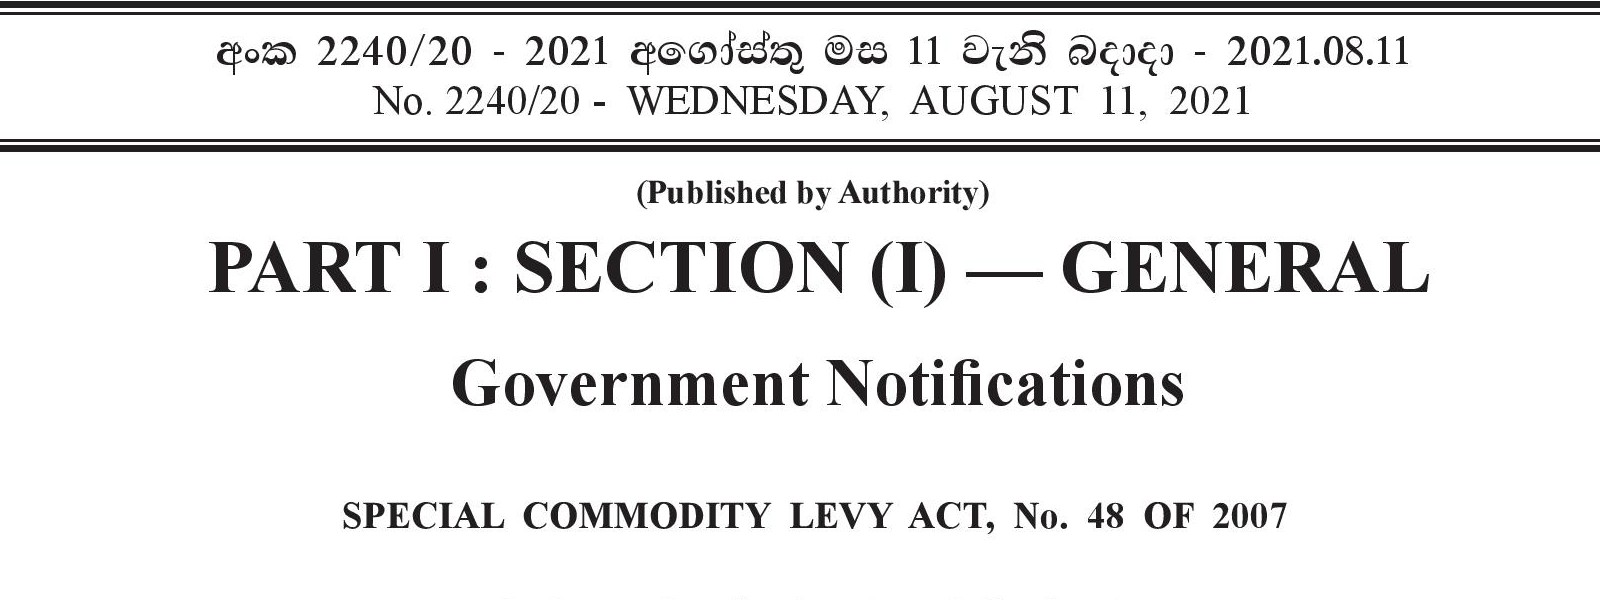 Special Commodity Levy imposed on a series of food items